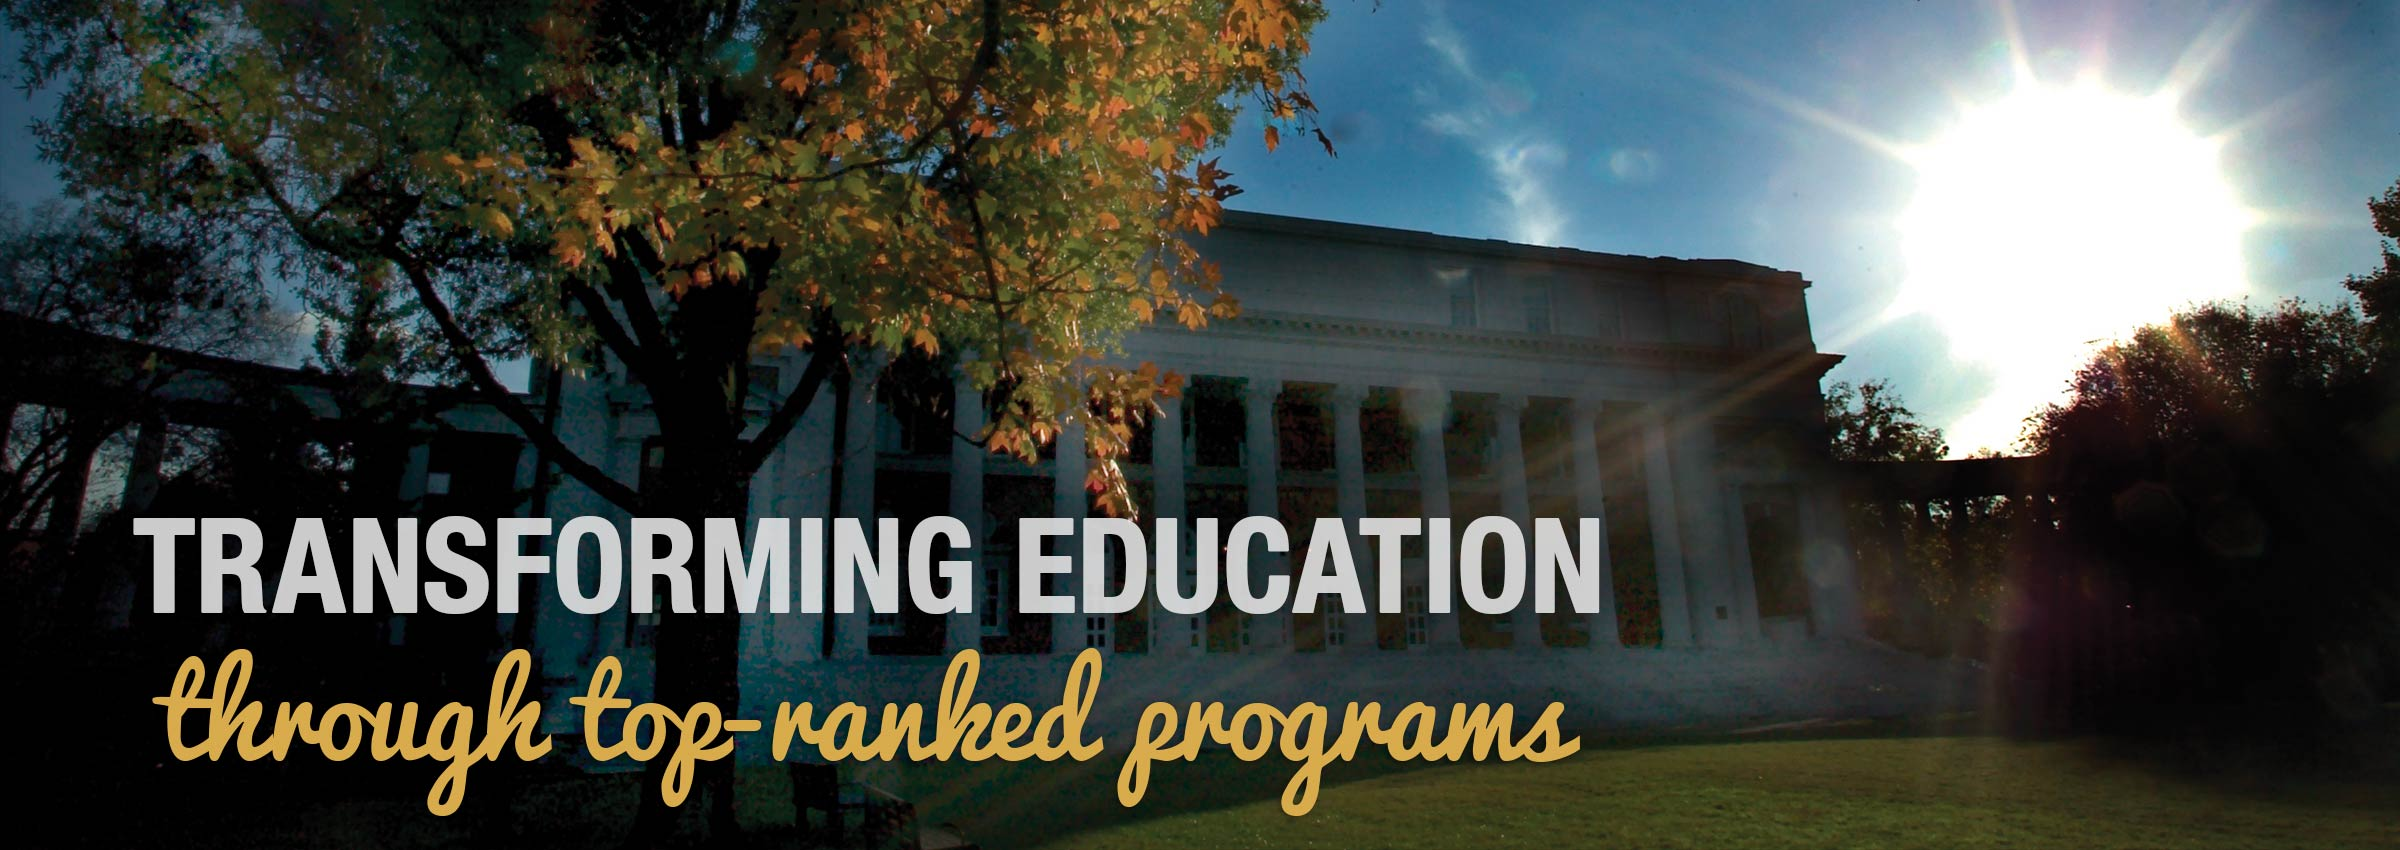 Transforming Education through top-ranked programs